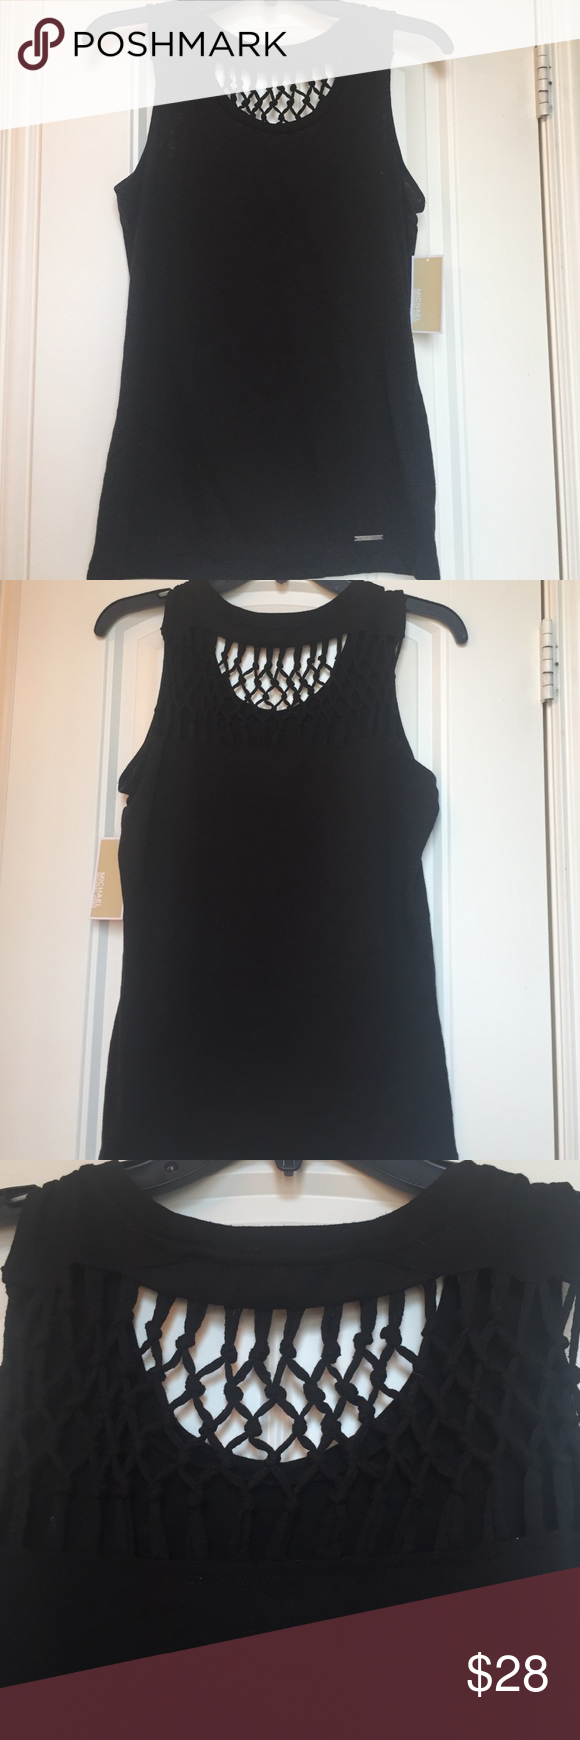 🆕 Michael Kors Top Black Michael Kors top with braided back yoke!! 60% cotton 40% polyester Michael Kors Tops Tank Tops